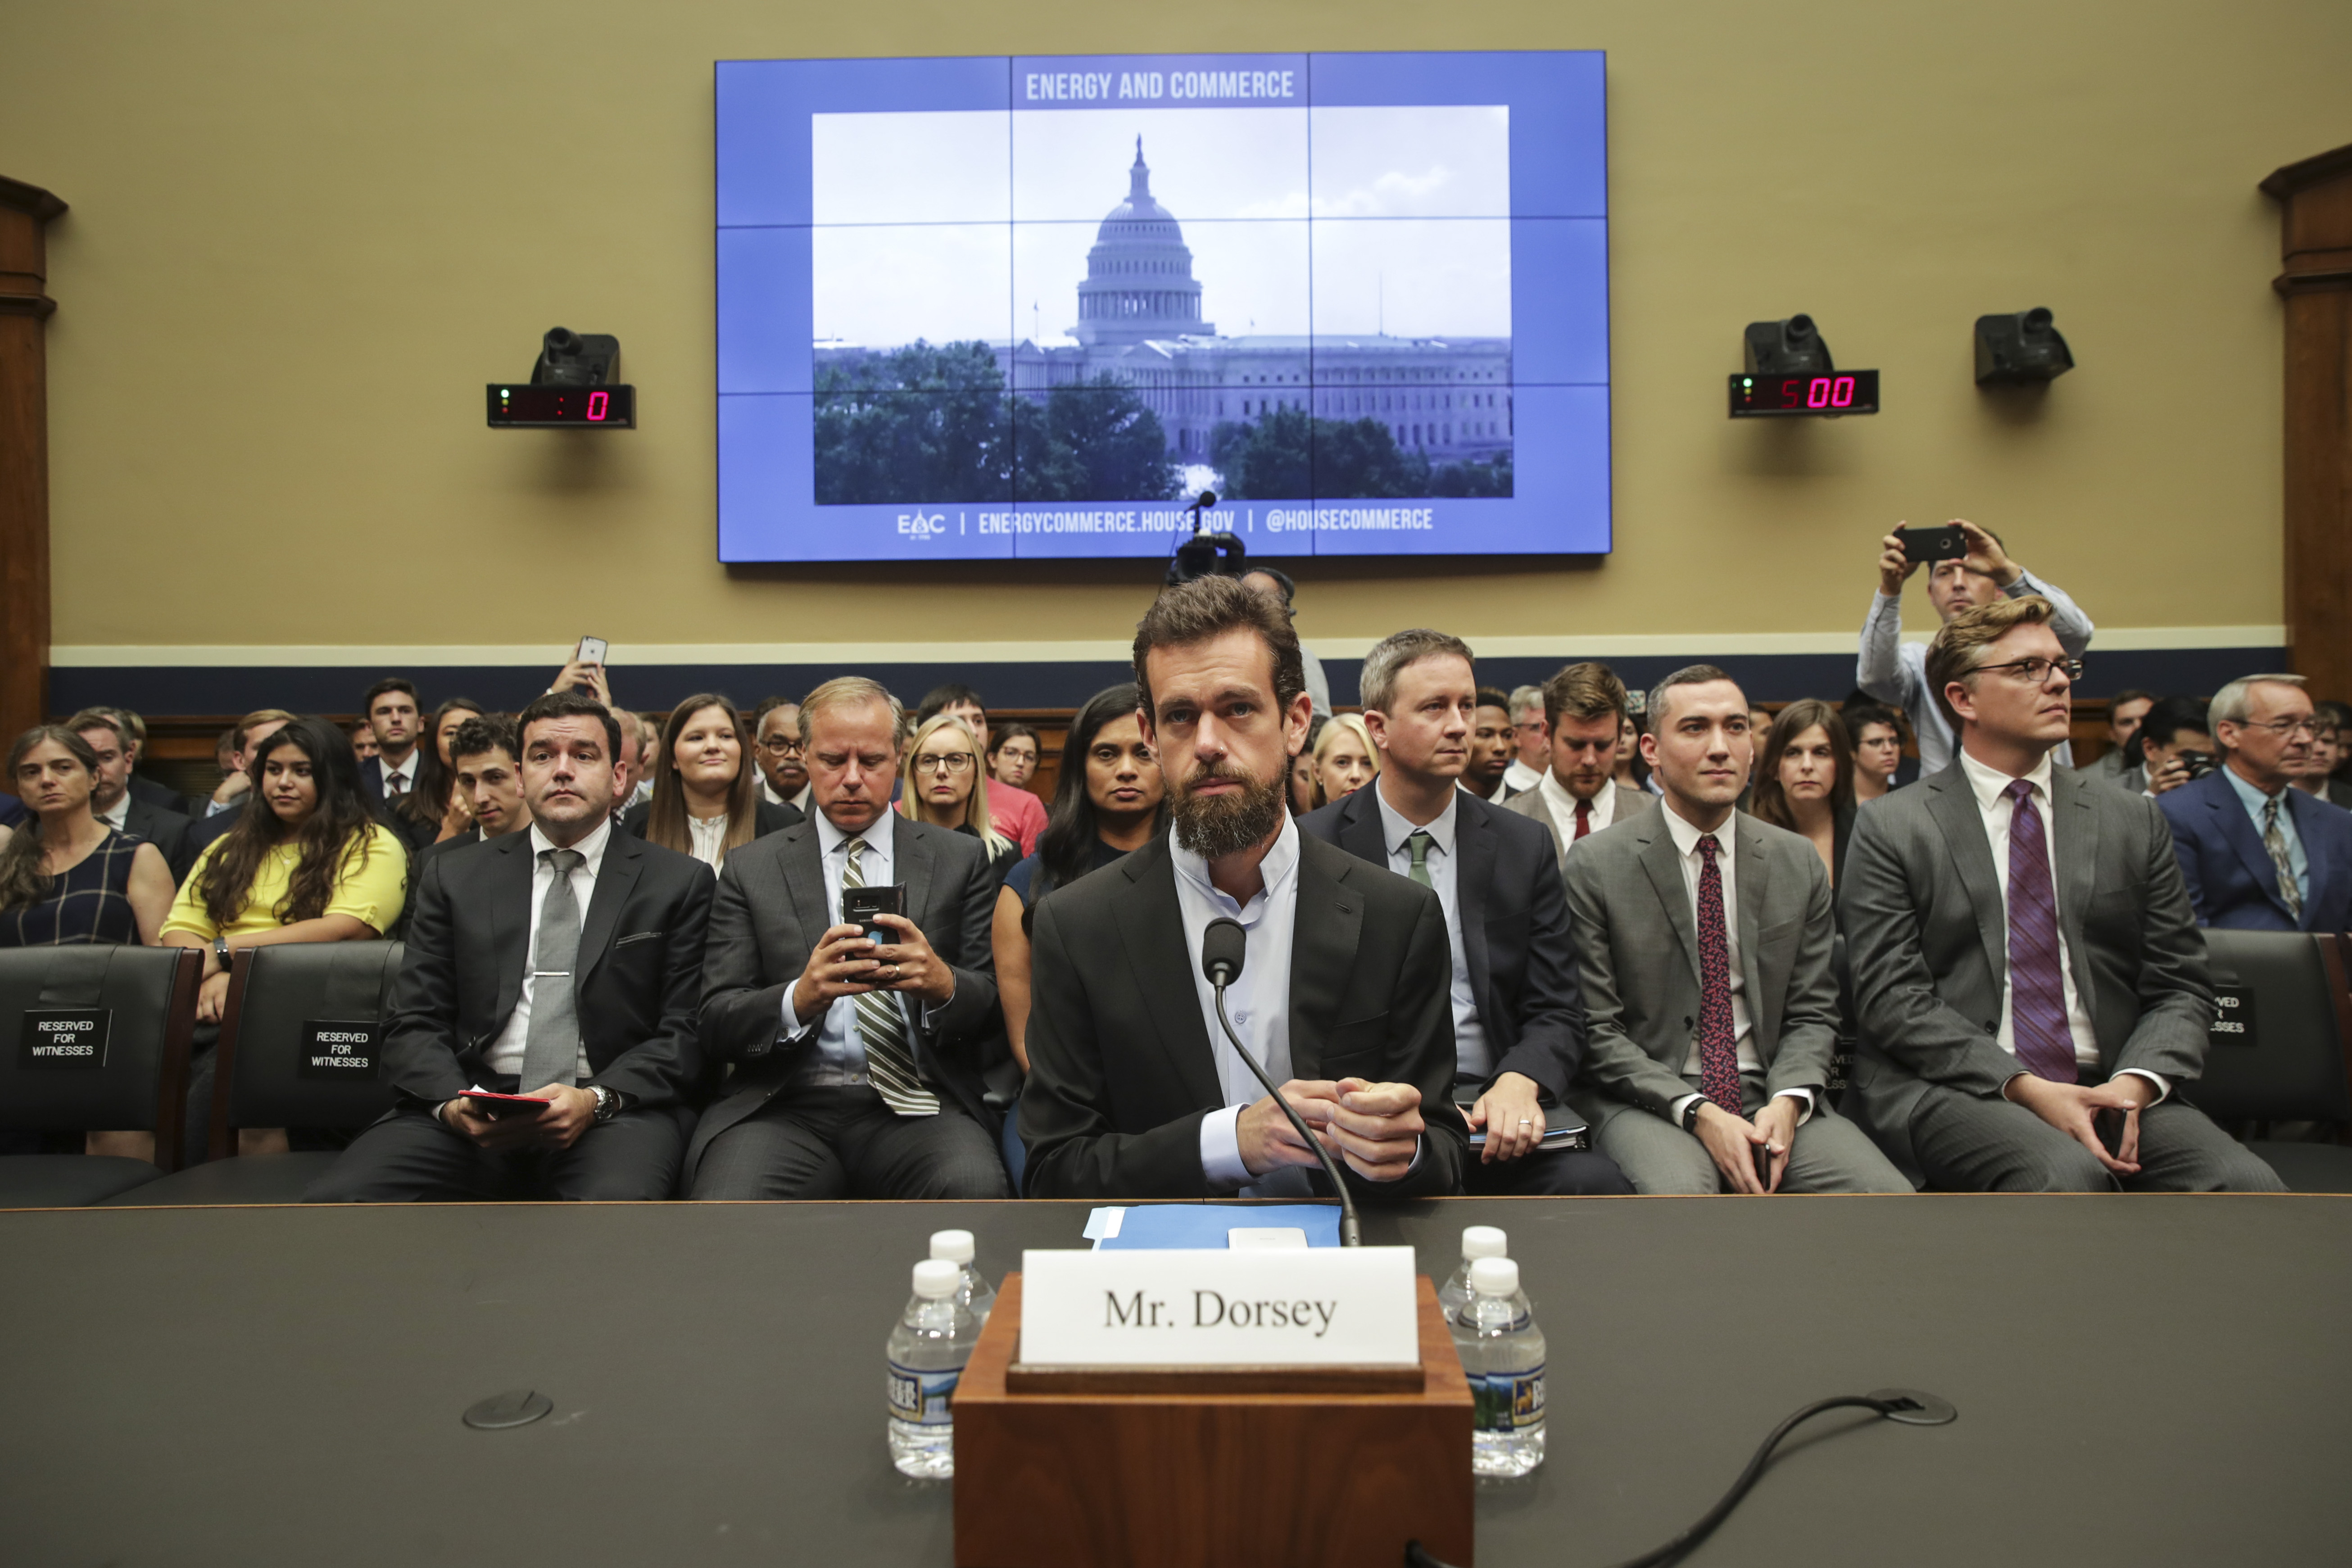 Twitter chief executive officer Jack Dorsey takes his seat as he arrives for a House Committee on Energy and Commerce hearing about Twitter's transparency and accountability, on Capitol Hill, September 5, 2018 in Washington, DC. Twitter CEO Jack Dorsey and Facebook chief operating officer Sheryl Sandberg faced questions about how foreign operatives use their platforms in attempts to influence and manipulate public opinion. (Photo by Drew Angerer/Getty Images)